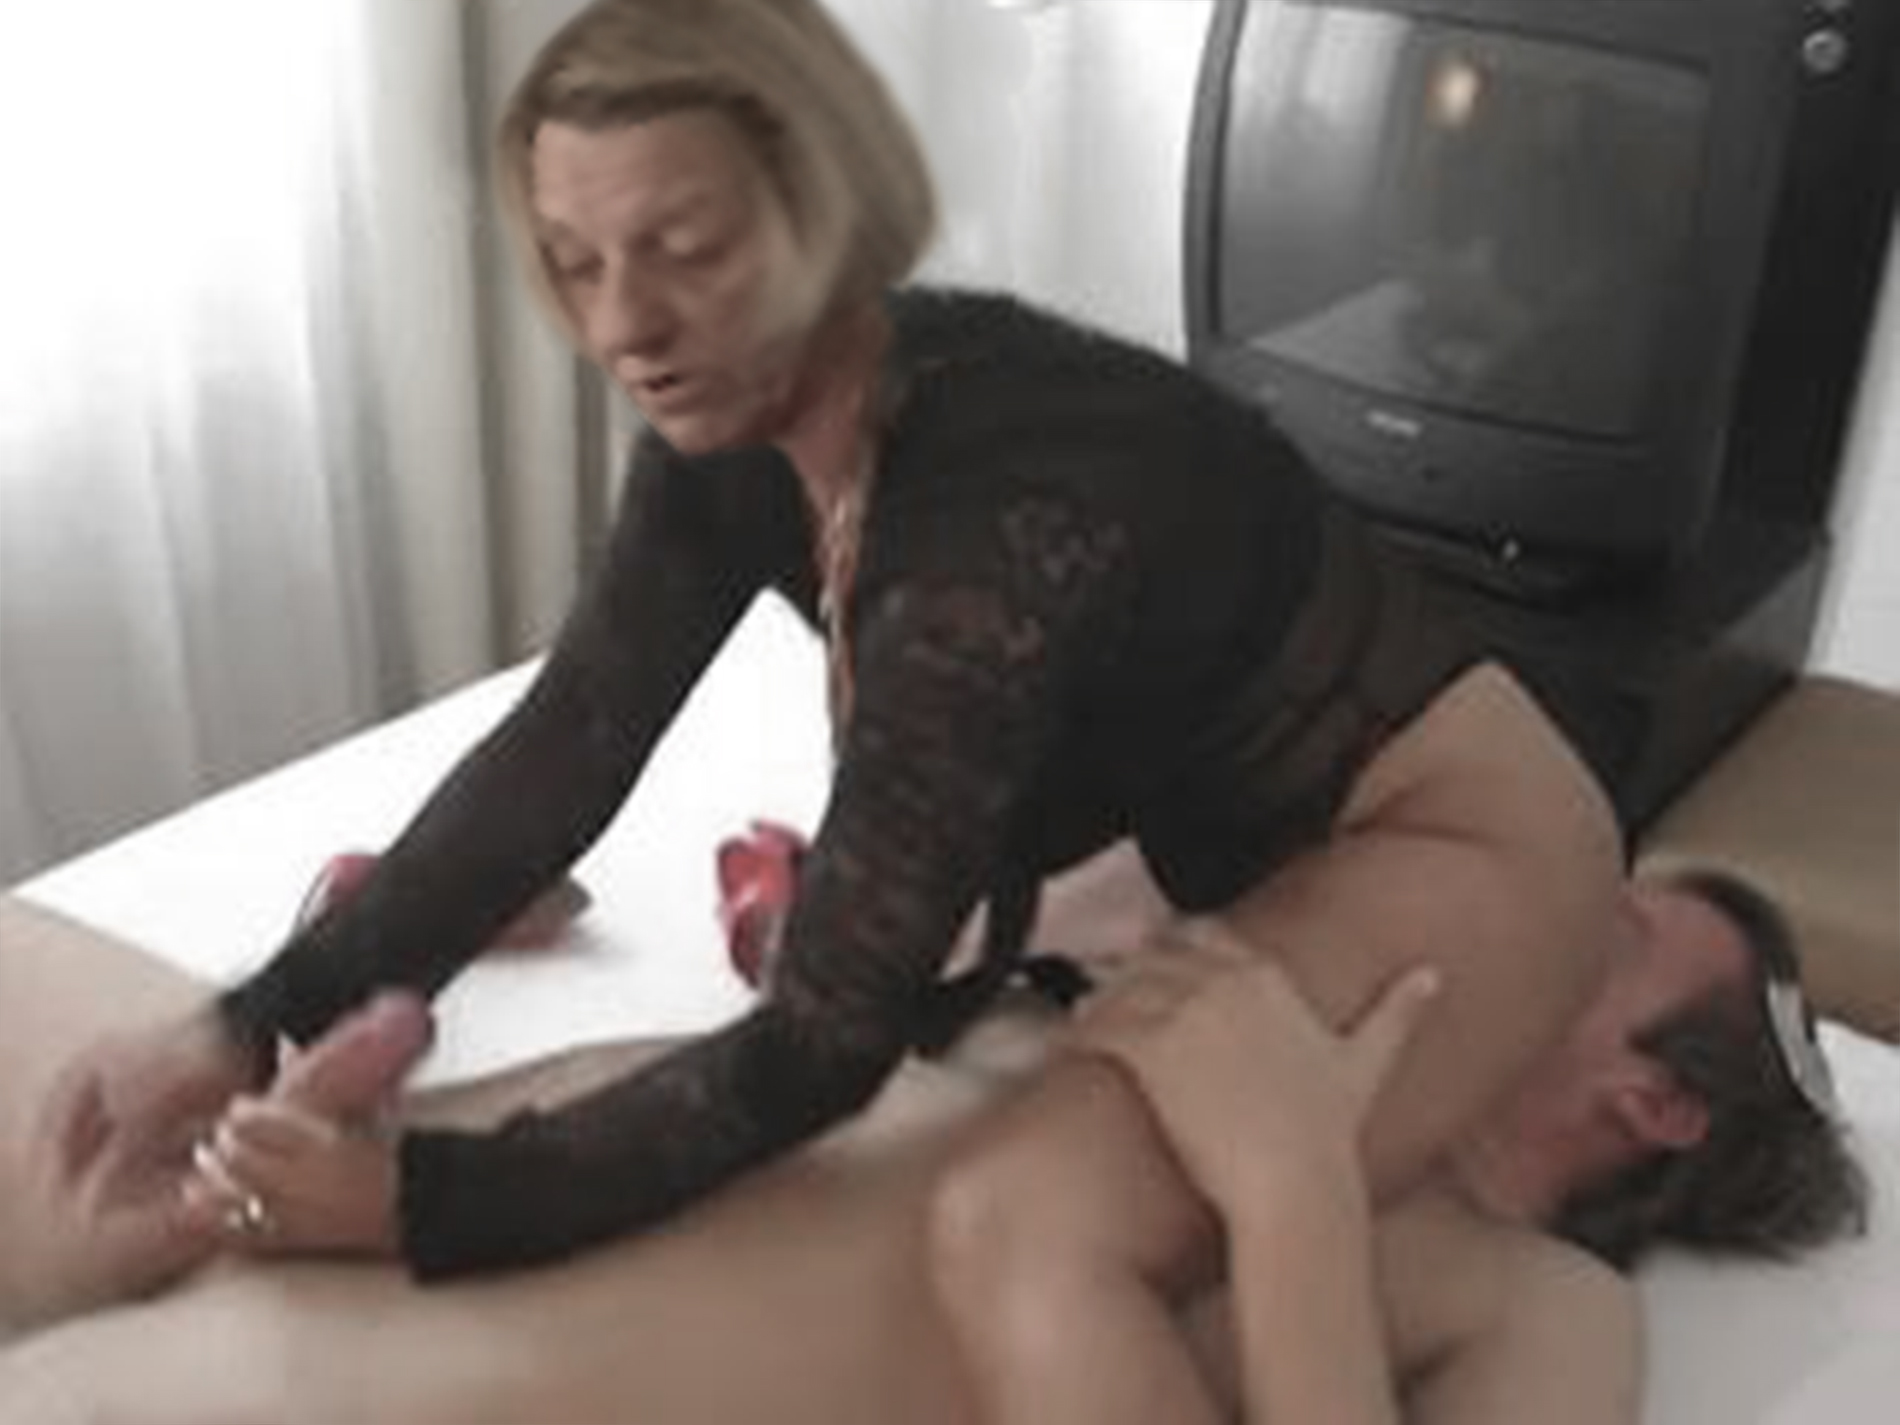 thank for the satin panties ass cumshot compilation attentively would read